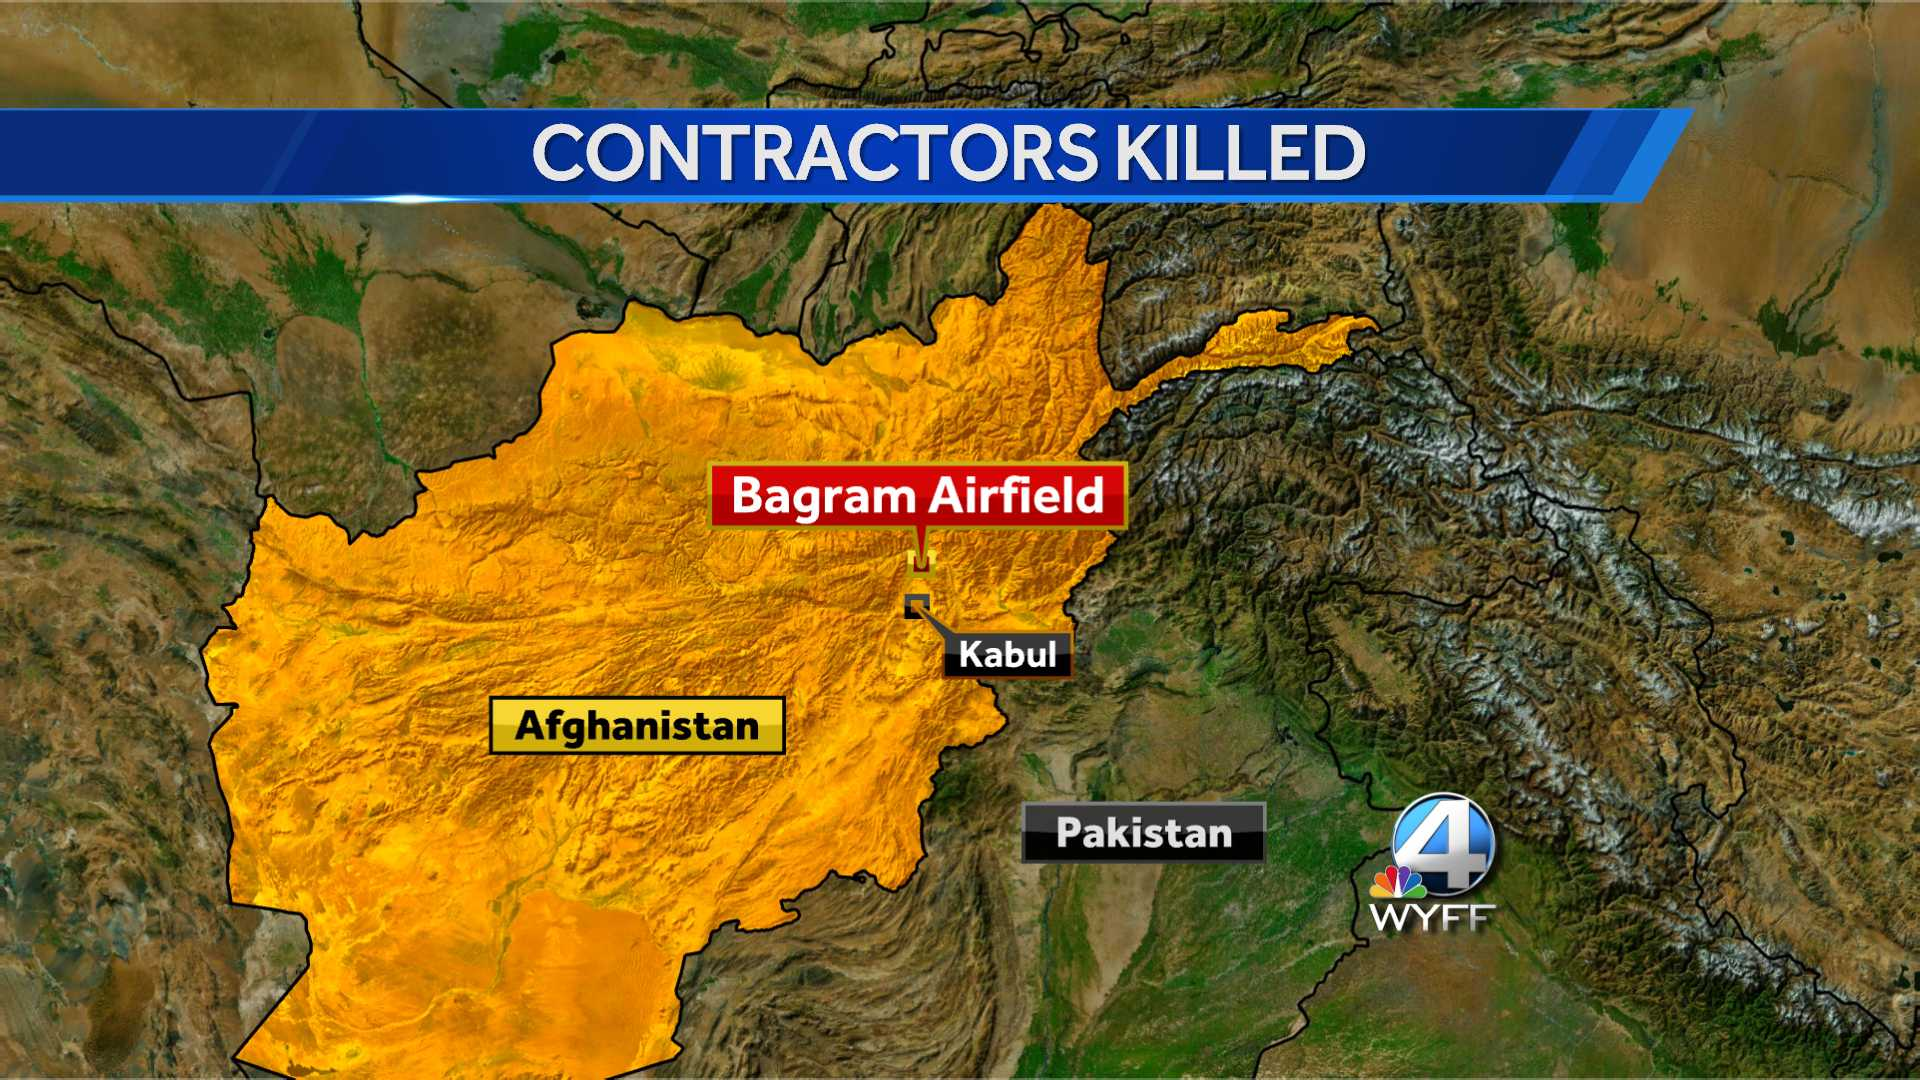 Bagram Airfield attack